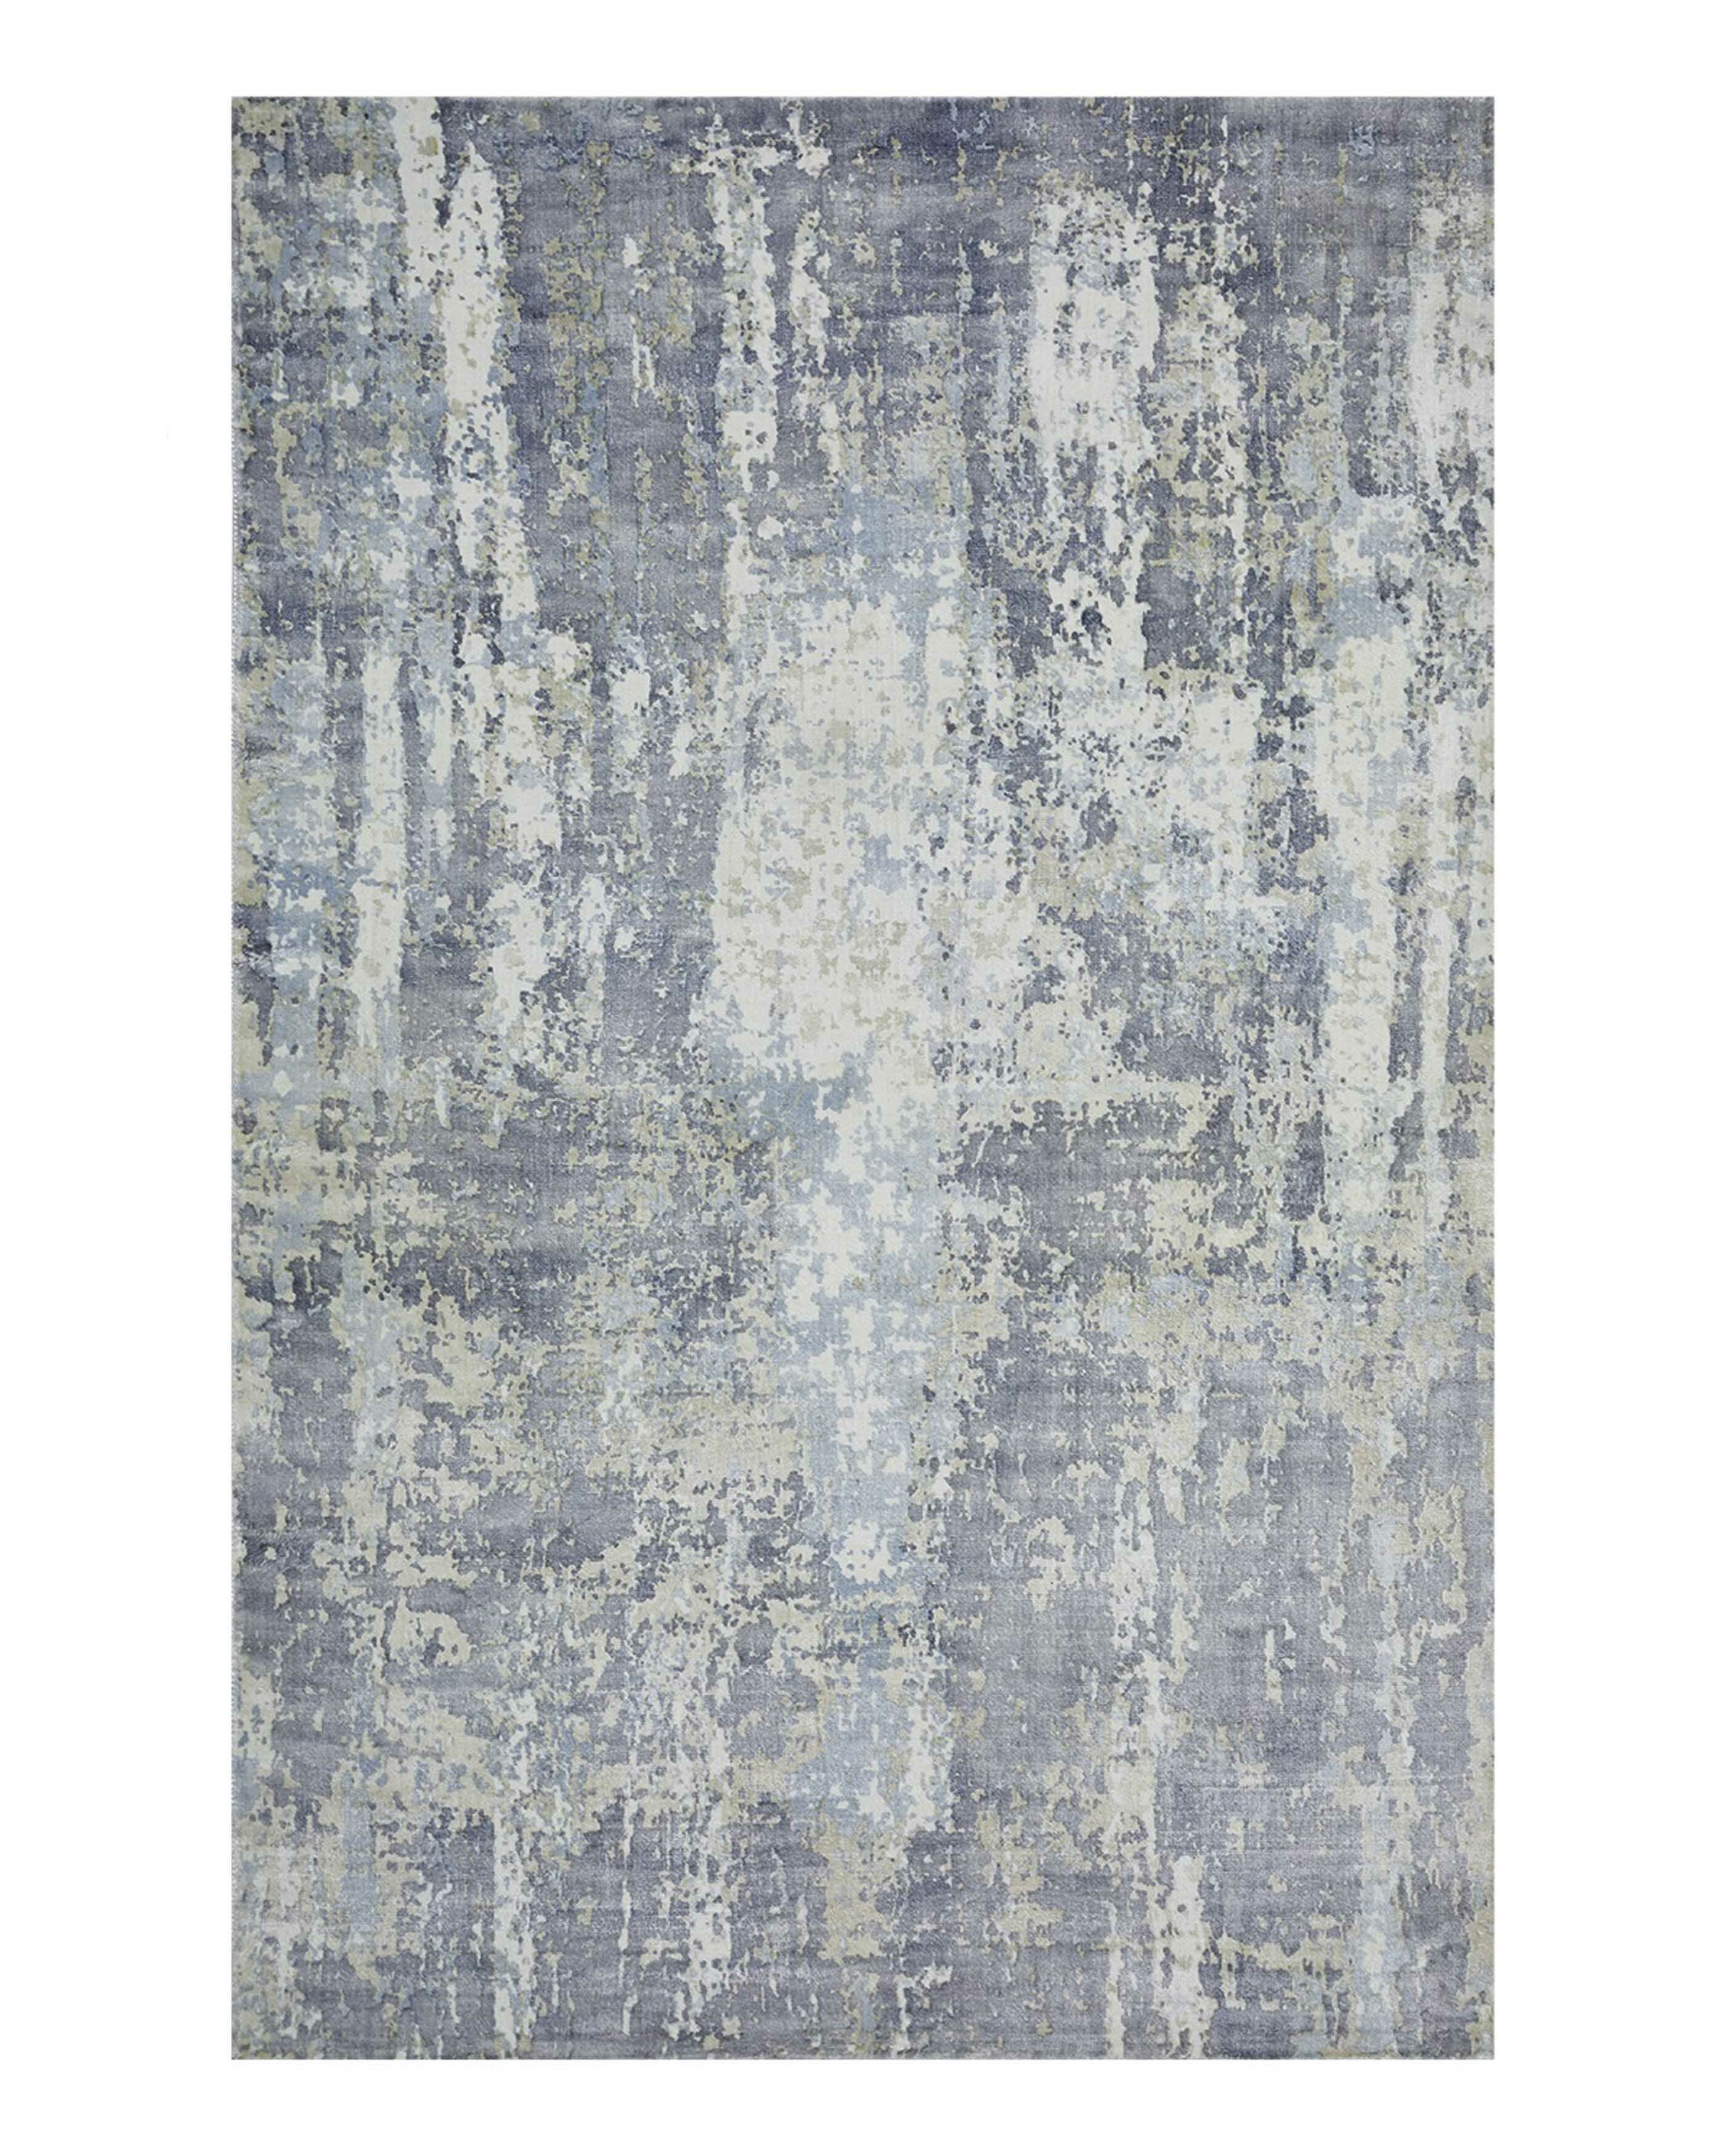 Solo Rugs Oberoi Abstract Hand Loomed Dark Blue Area Rug Perigold